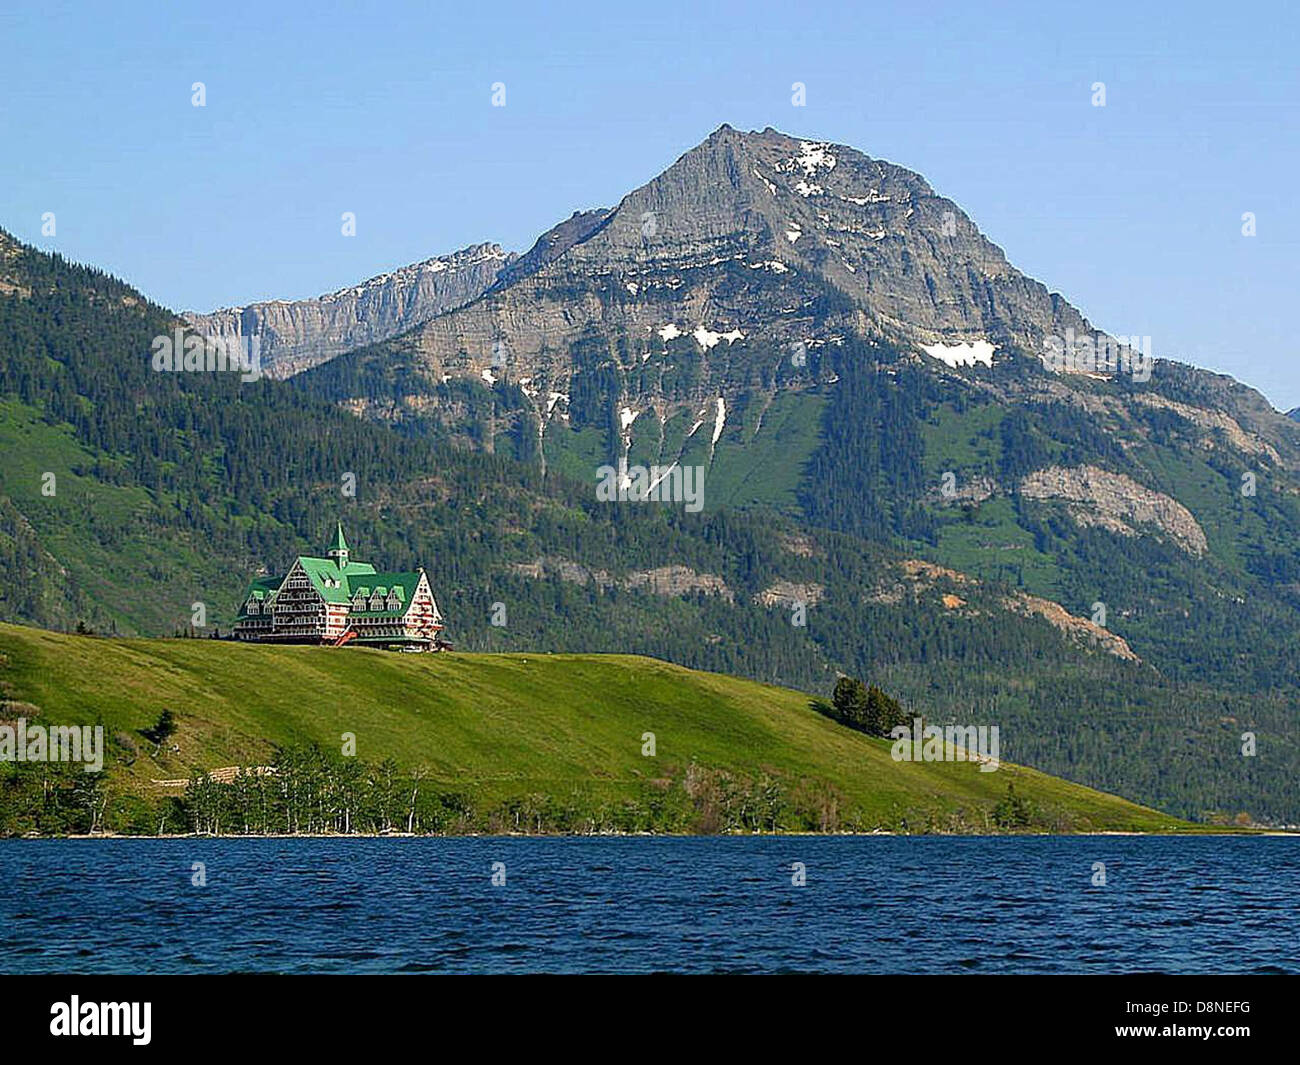 Waterton lakes national park prince of Wales hotel. - Stock Image